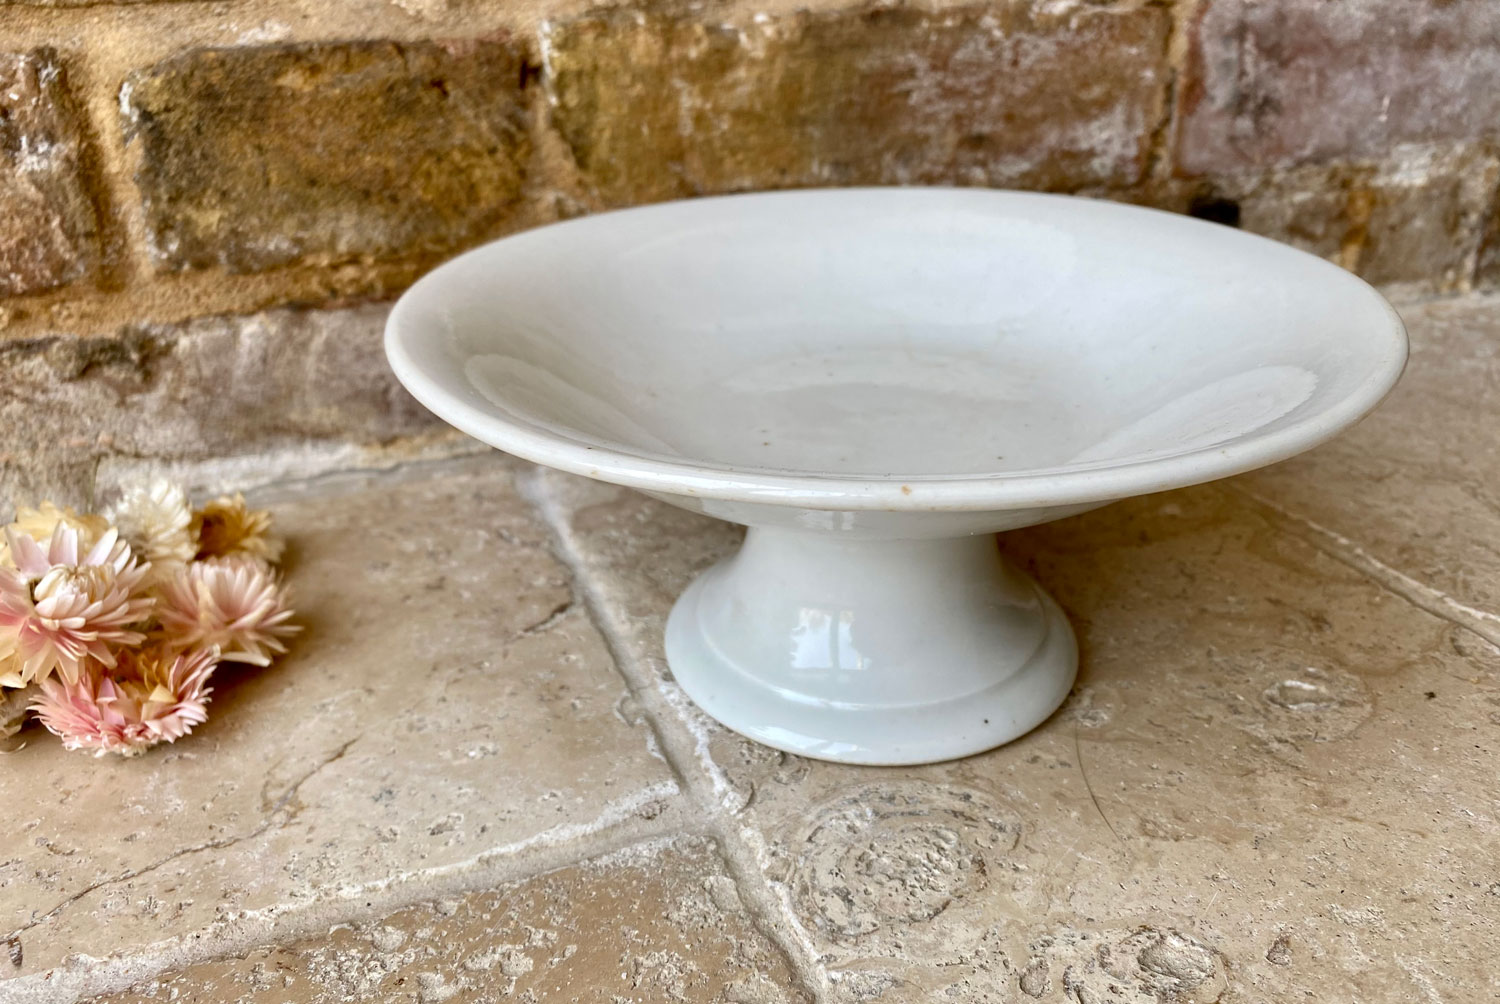 antique early mid 20th century small footed french plain white ironstone compote stand dish compotier